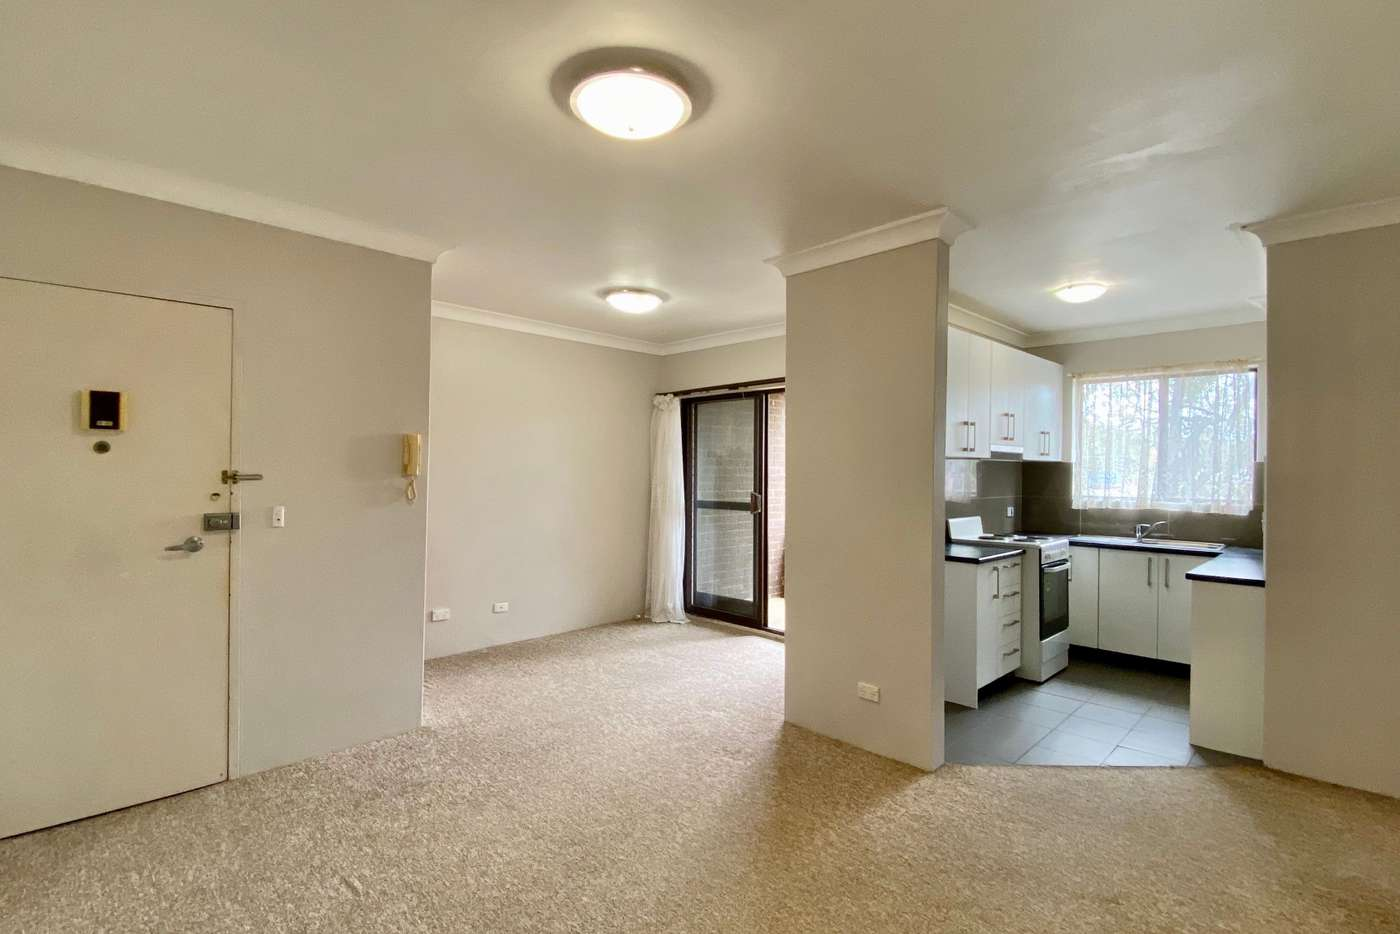 Main view of Homely unit listing, 3/27 Apsley Street, Penshurst NSW 2222